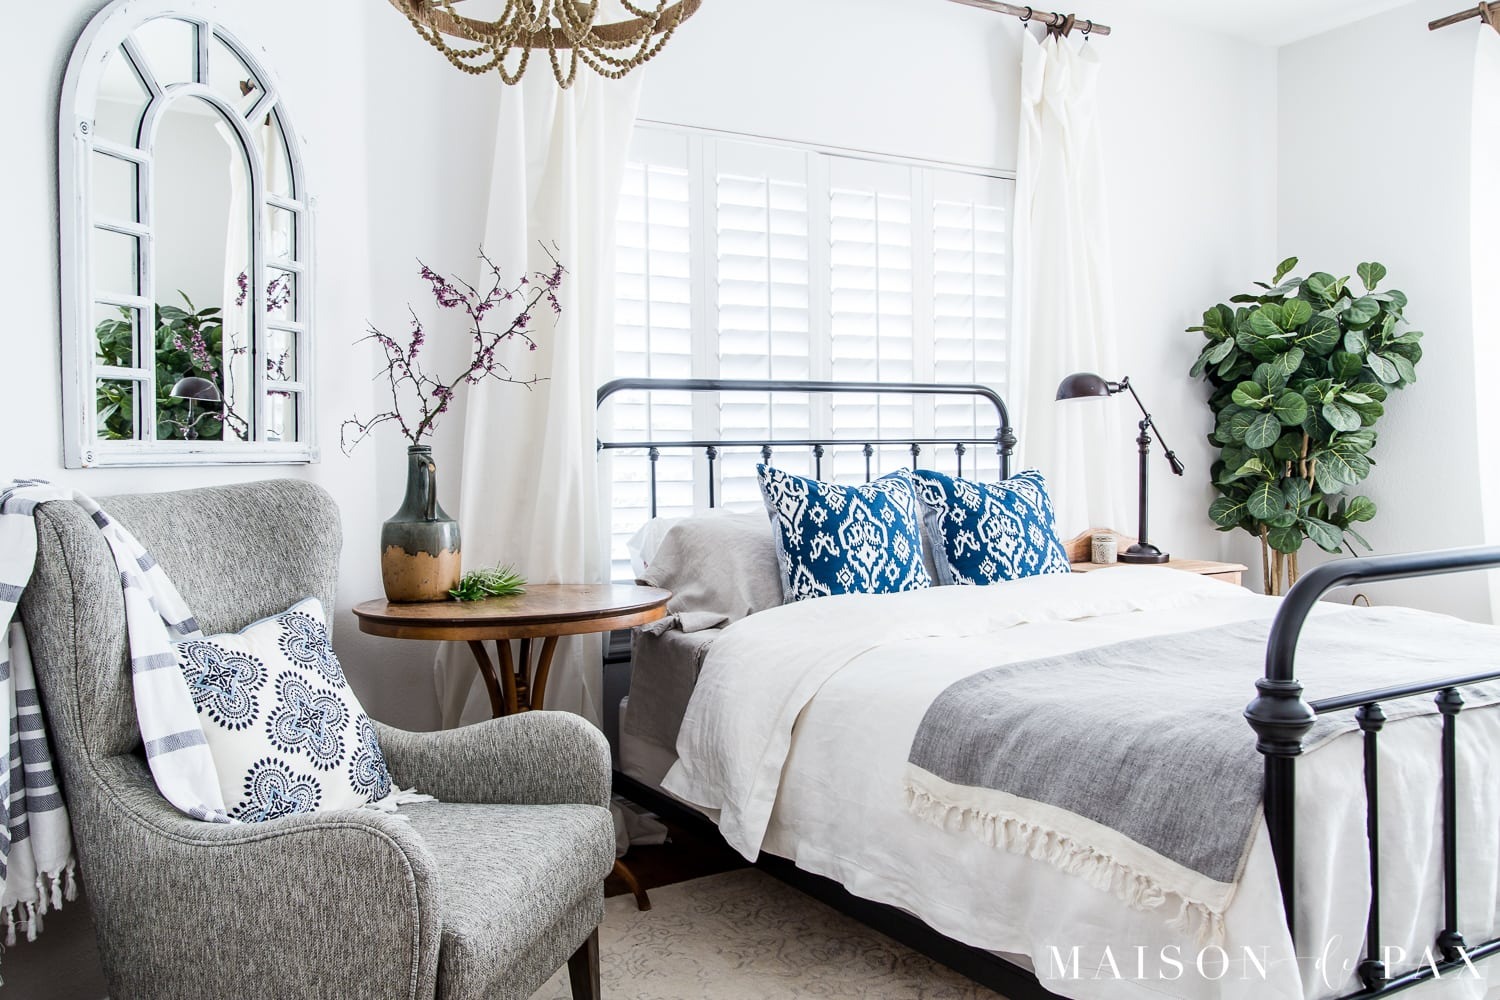 Mostly white bedroom with pops of blue for spring/summer... Looking to add a seasonal touch to your bedroom?  Don't miss these incredibly simple master bedroom decorating ideas for spring! #springdecor #springbedroom #nightstand #modernfarmhouse